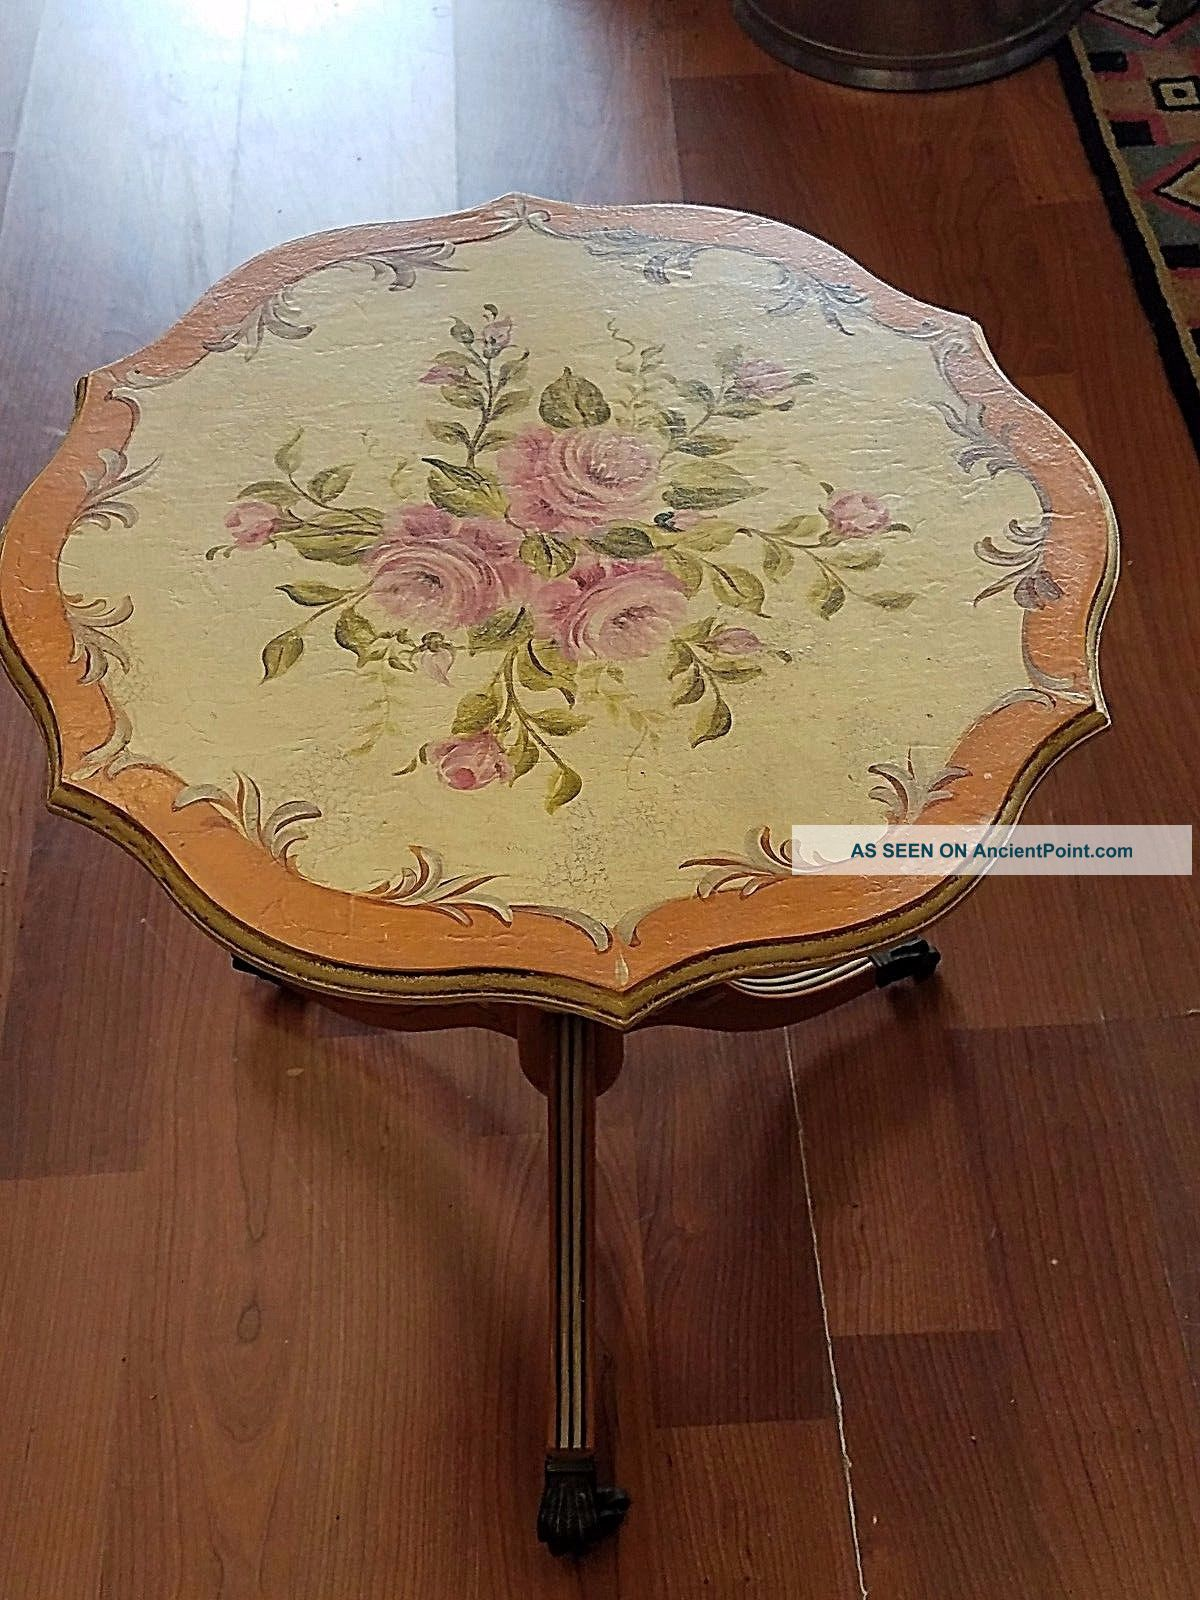 Antique Painted Accent Side Table With Roses Pretty Piece 1900-1950 photo